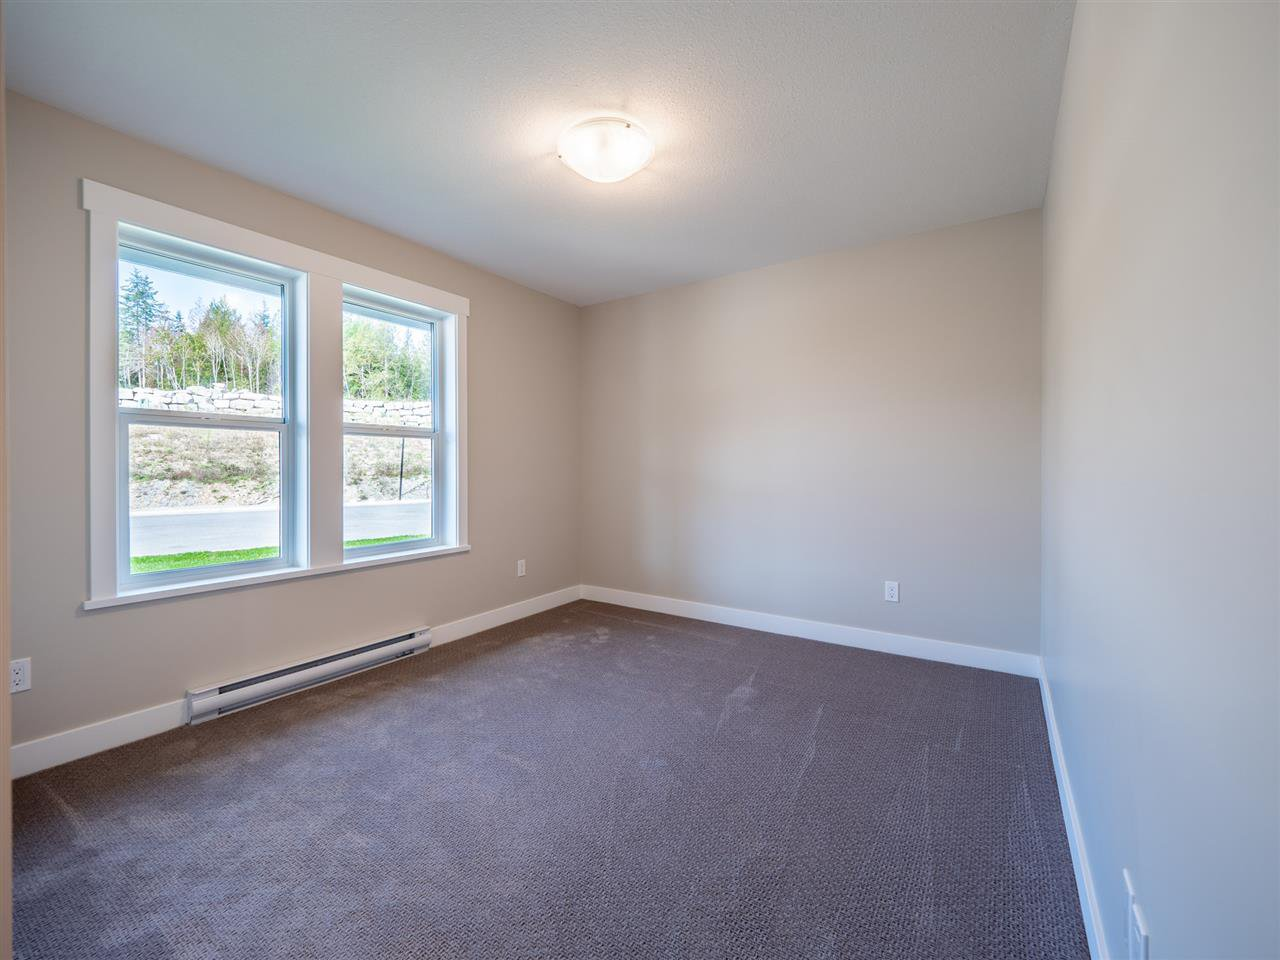 """Photo 21: Photos: 5634 KINGBIRD Crescent in Sechelt: Sechelt District House for sale in """"SilverStone Heights Phase2"""" (Sunshine Coast)  : MLS®# R2466073"""